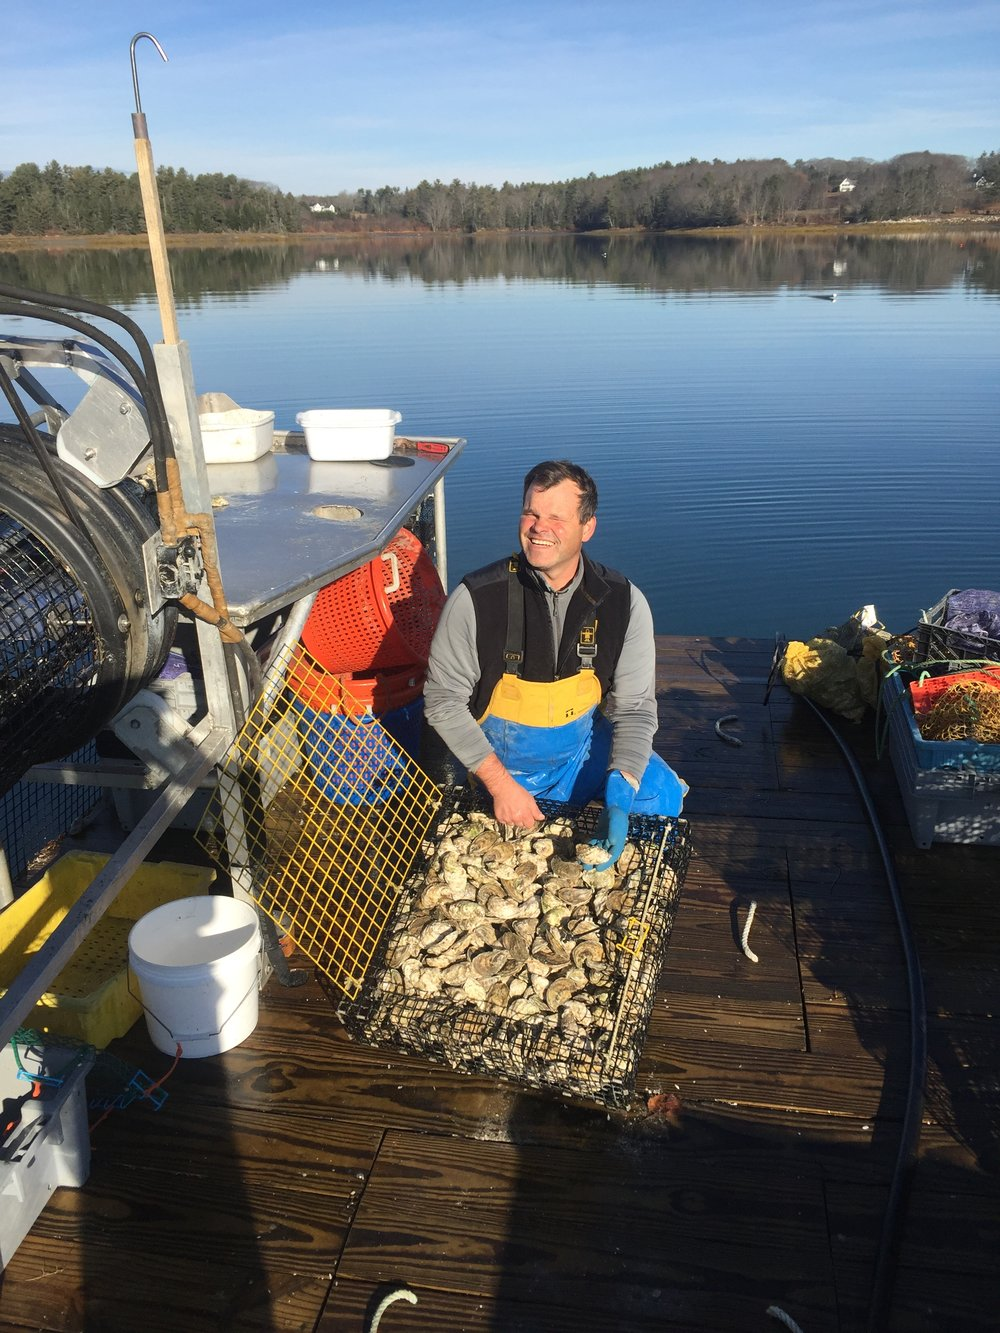 Dave, why did you decide to start an oyster farm? -  I began digging clams at age 12 , I found Belons in Fitch Cove and talked Mike Farrin into buying them in South Bristol in 1987. After lobstering for 16 years I bought oyster seed when clam digging declined. I began full time oystering in 2012.